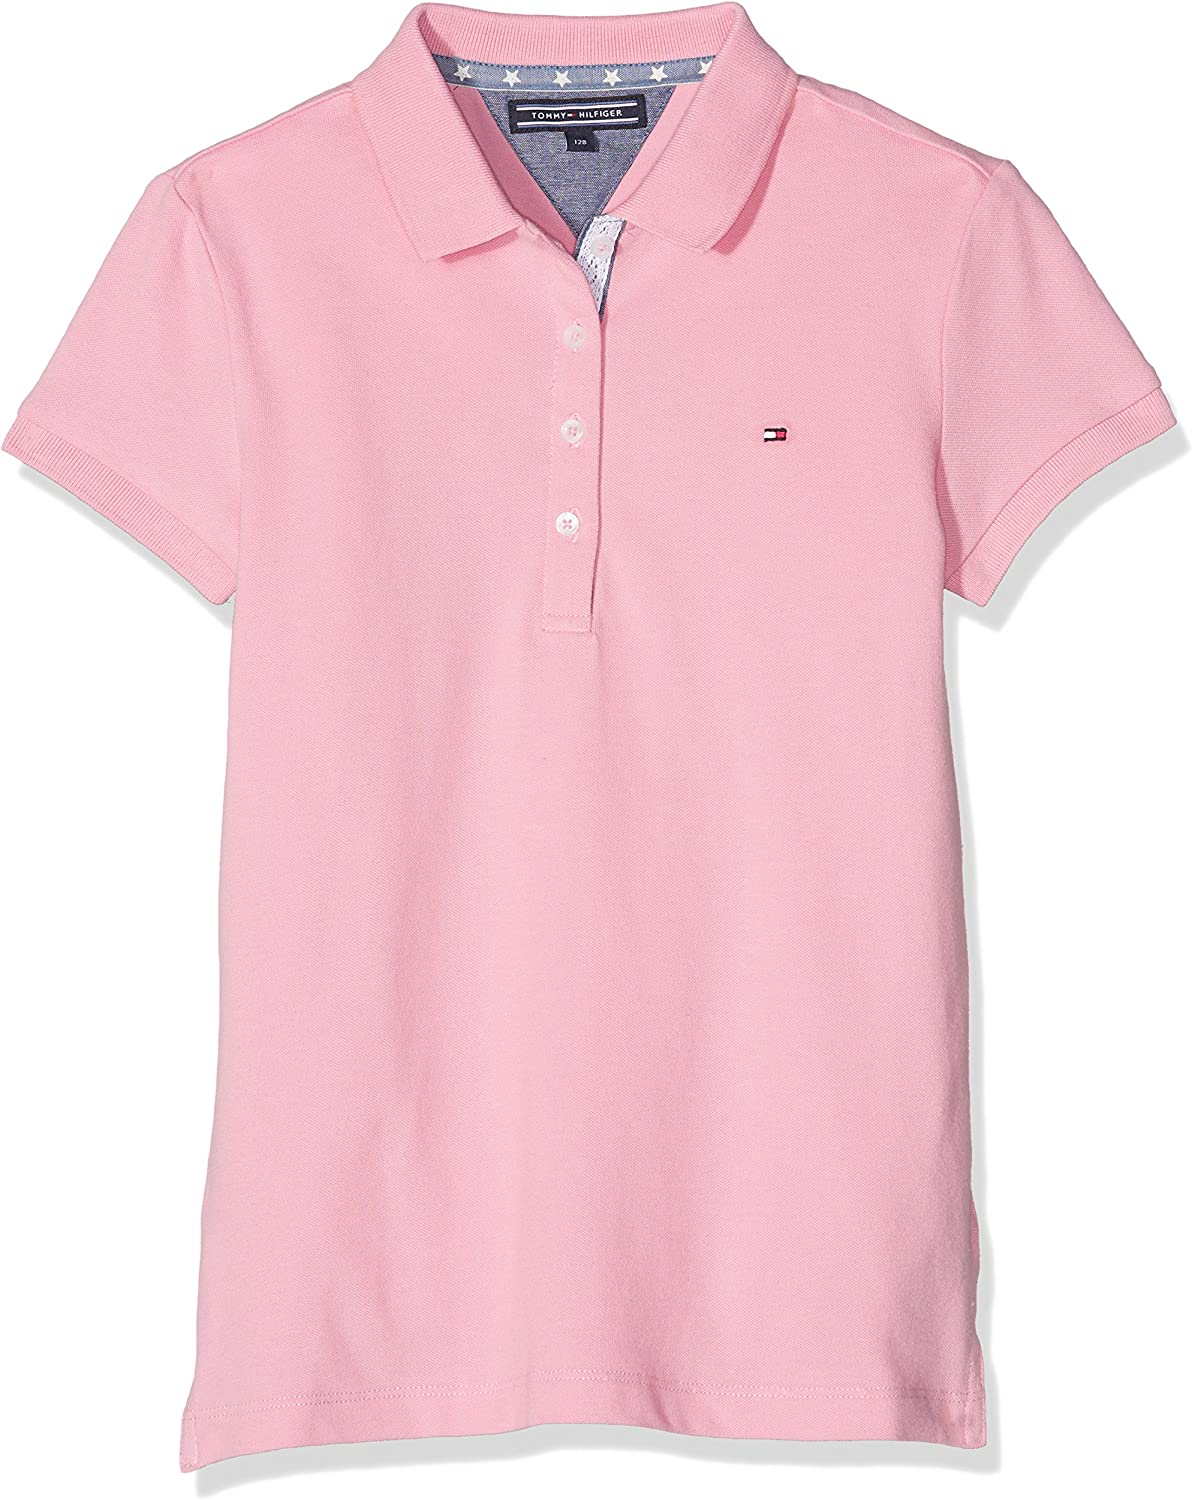 Tommy Hilfiger Girls Fitted Polo S/S suéter, Rosa (Sea Pink), 176 ...